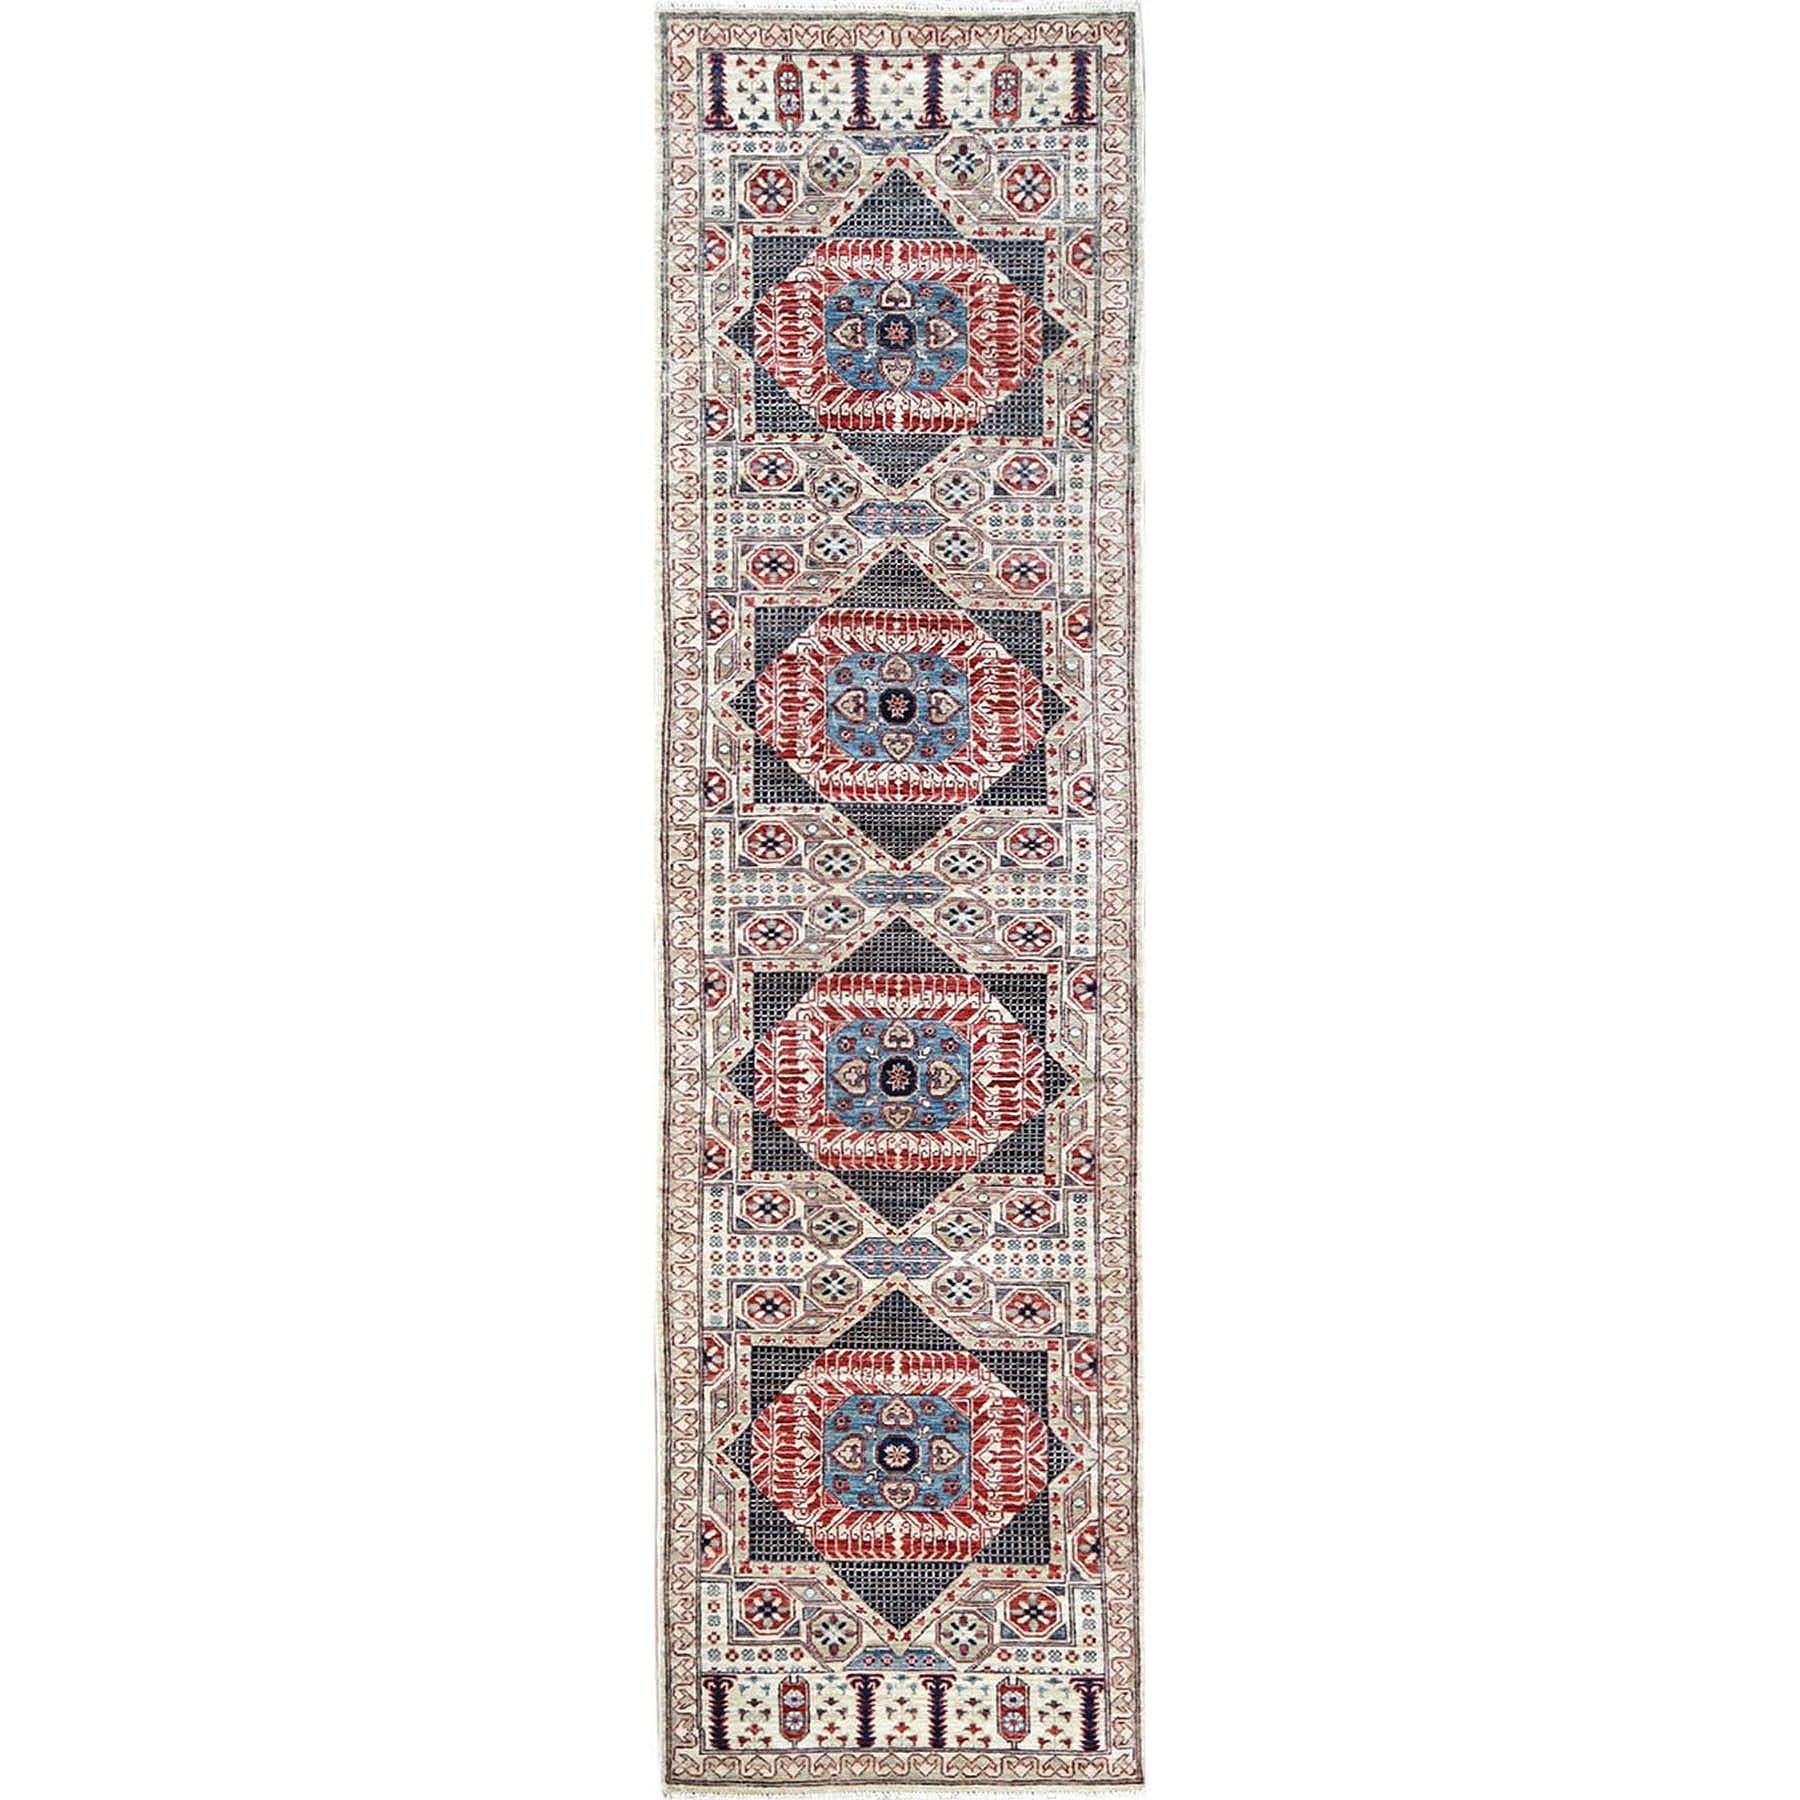 "2'7""x9'9"" Super Fine Peshawar Mamluk Design With Denser Weave Runner Shiny Wool Even Pile Hand Knotted Oriental Rug"